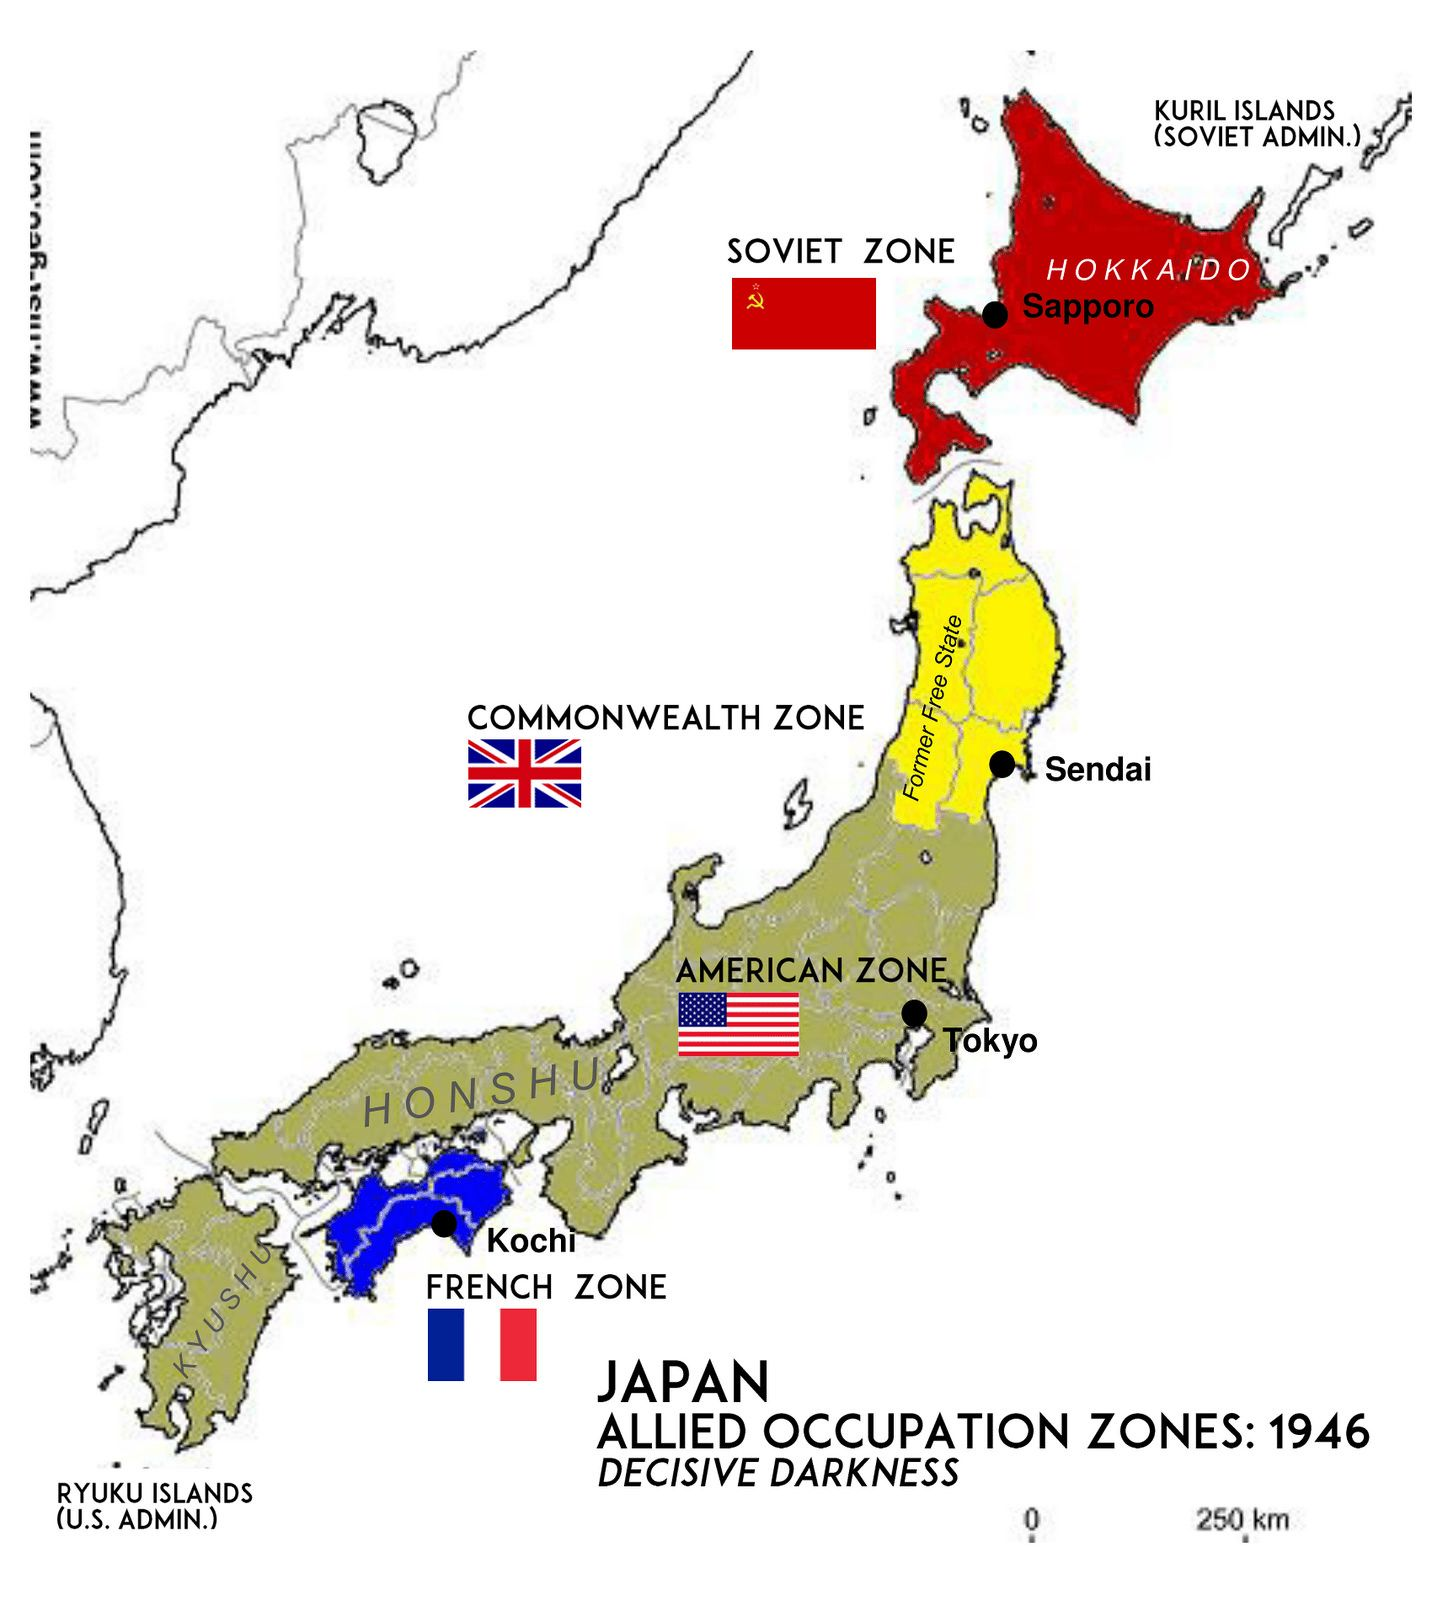 Proposed Post War Occupation Of Japan By Soviet And Allied